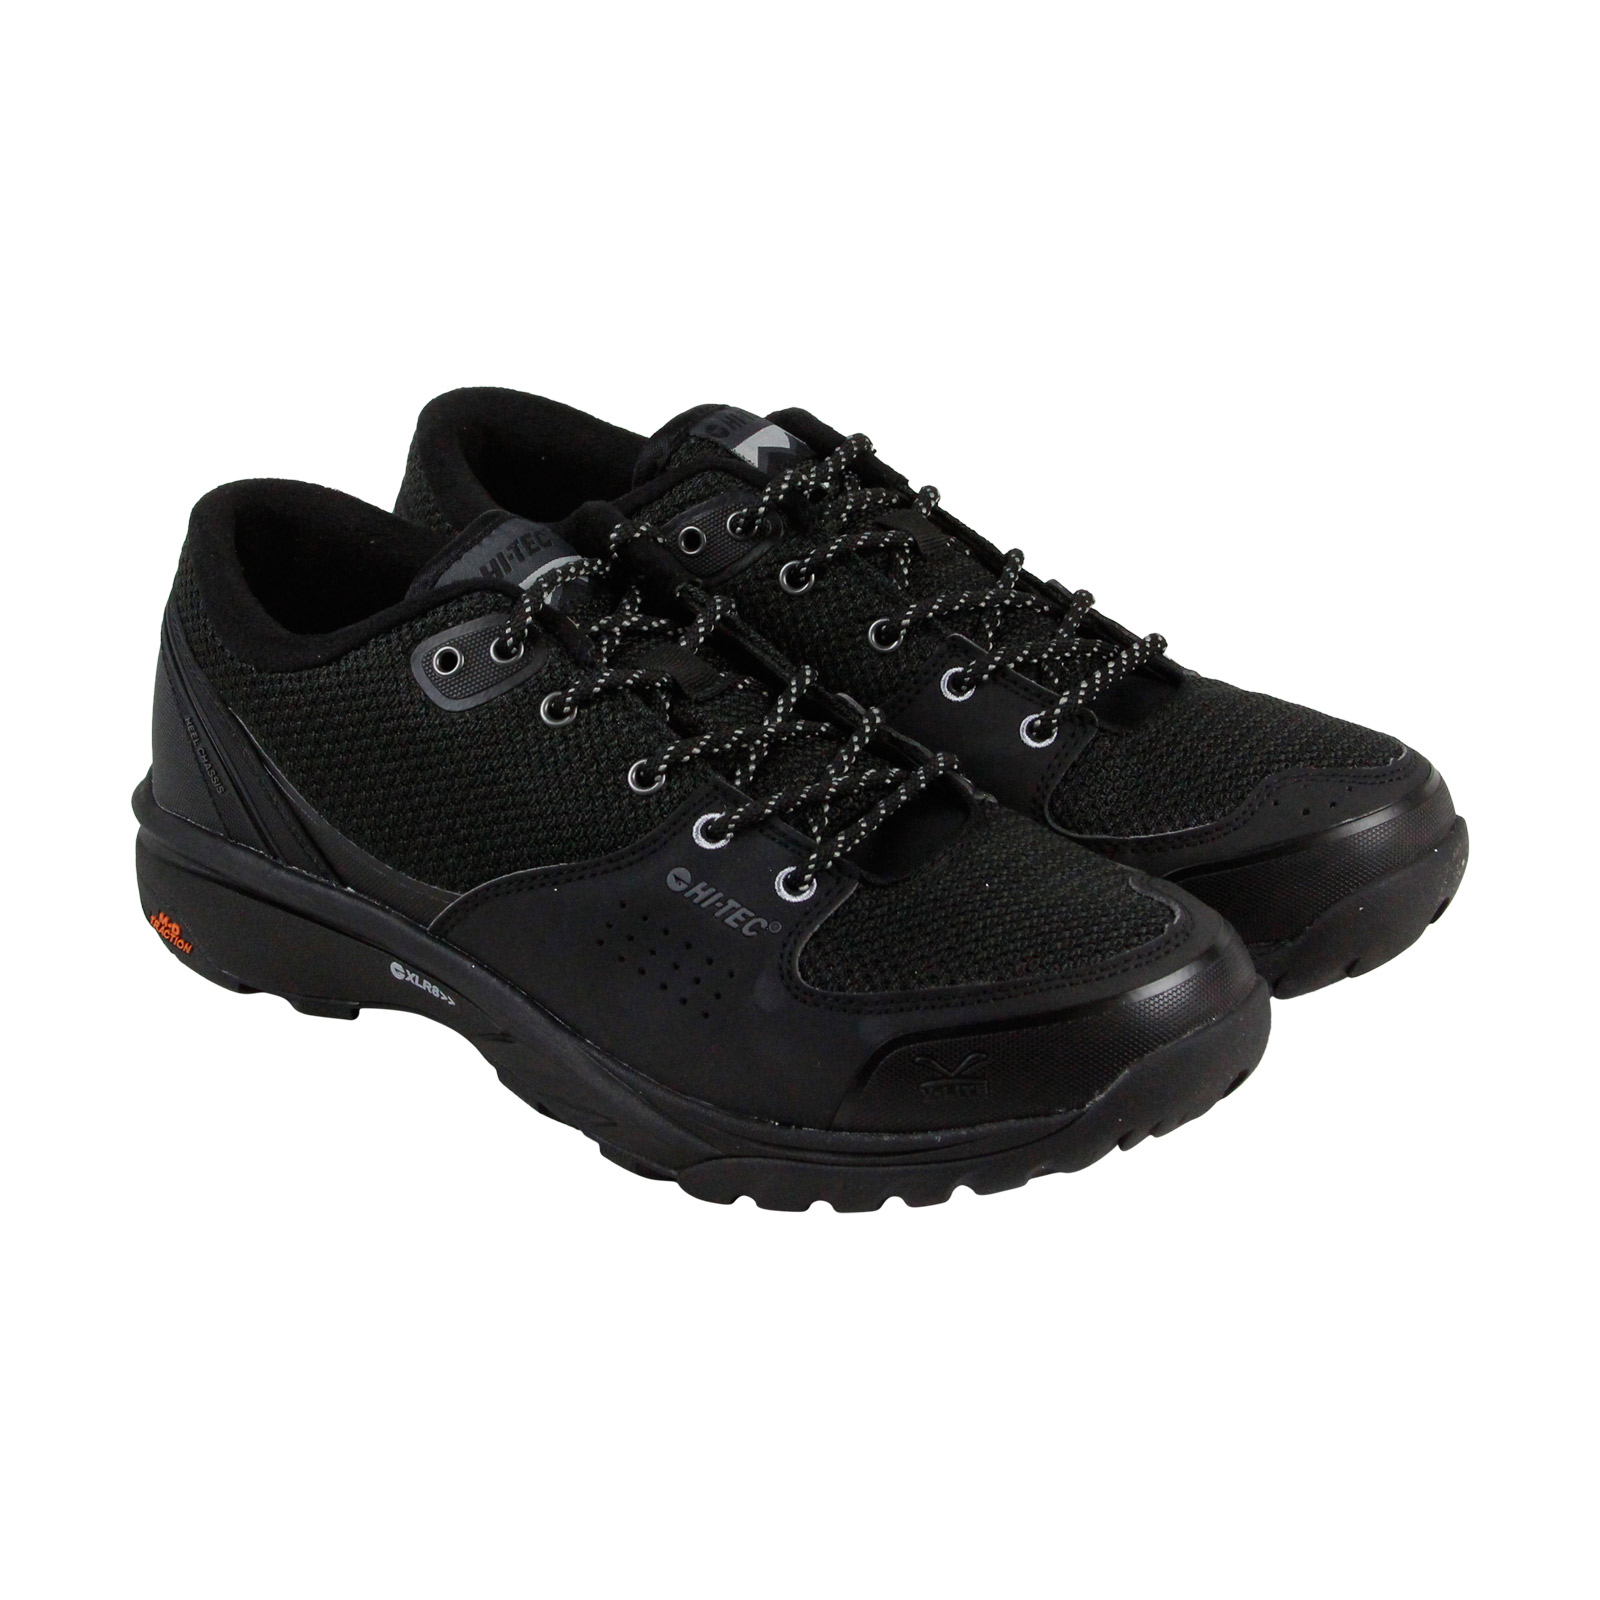 Hi-Tec V Lite Wildlife Low I Mens Black Mesh & synthetic Hiking Boots Shoes by